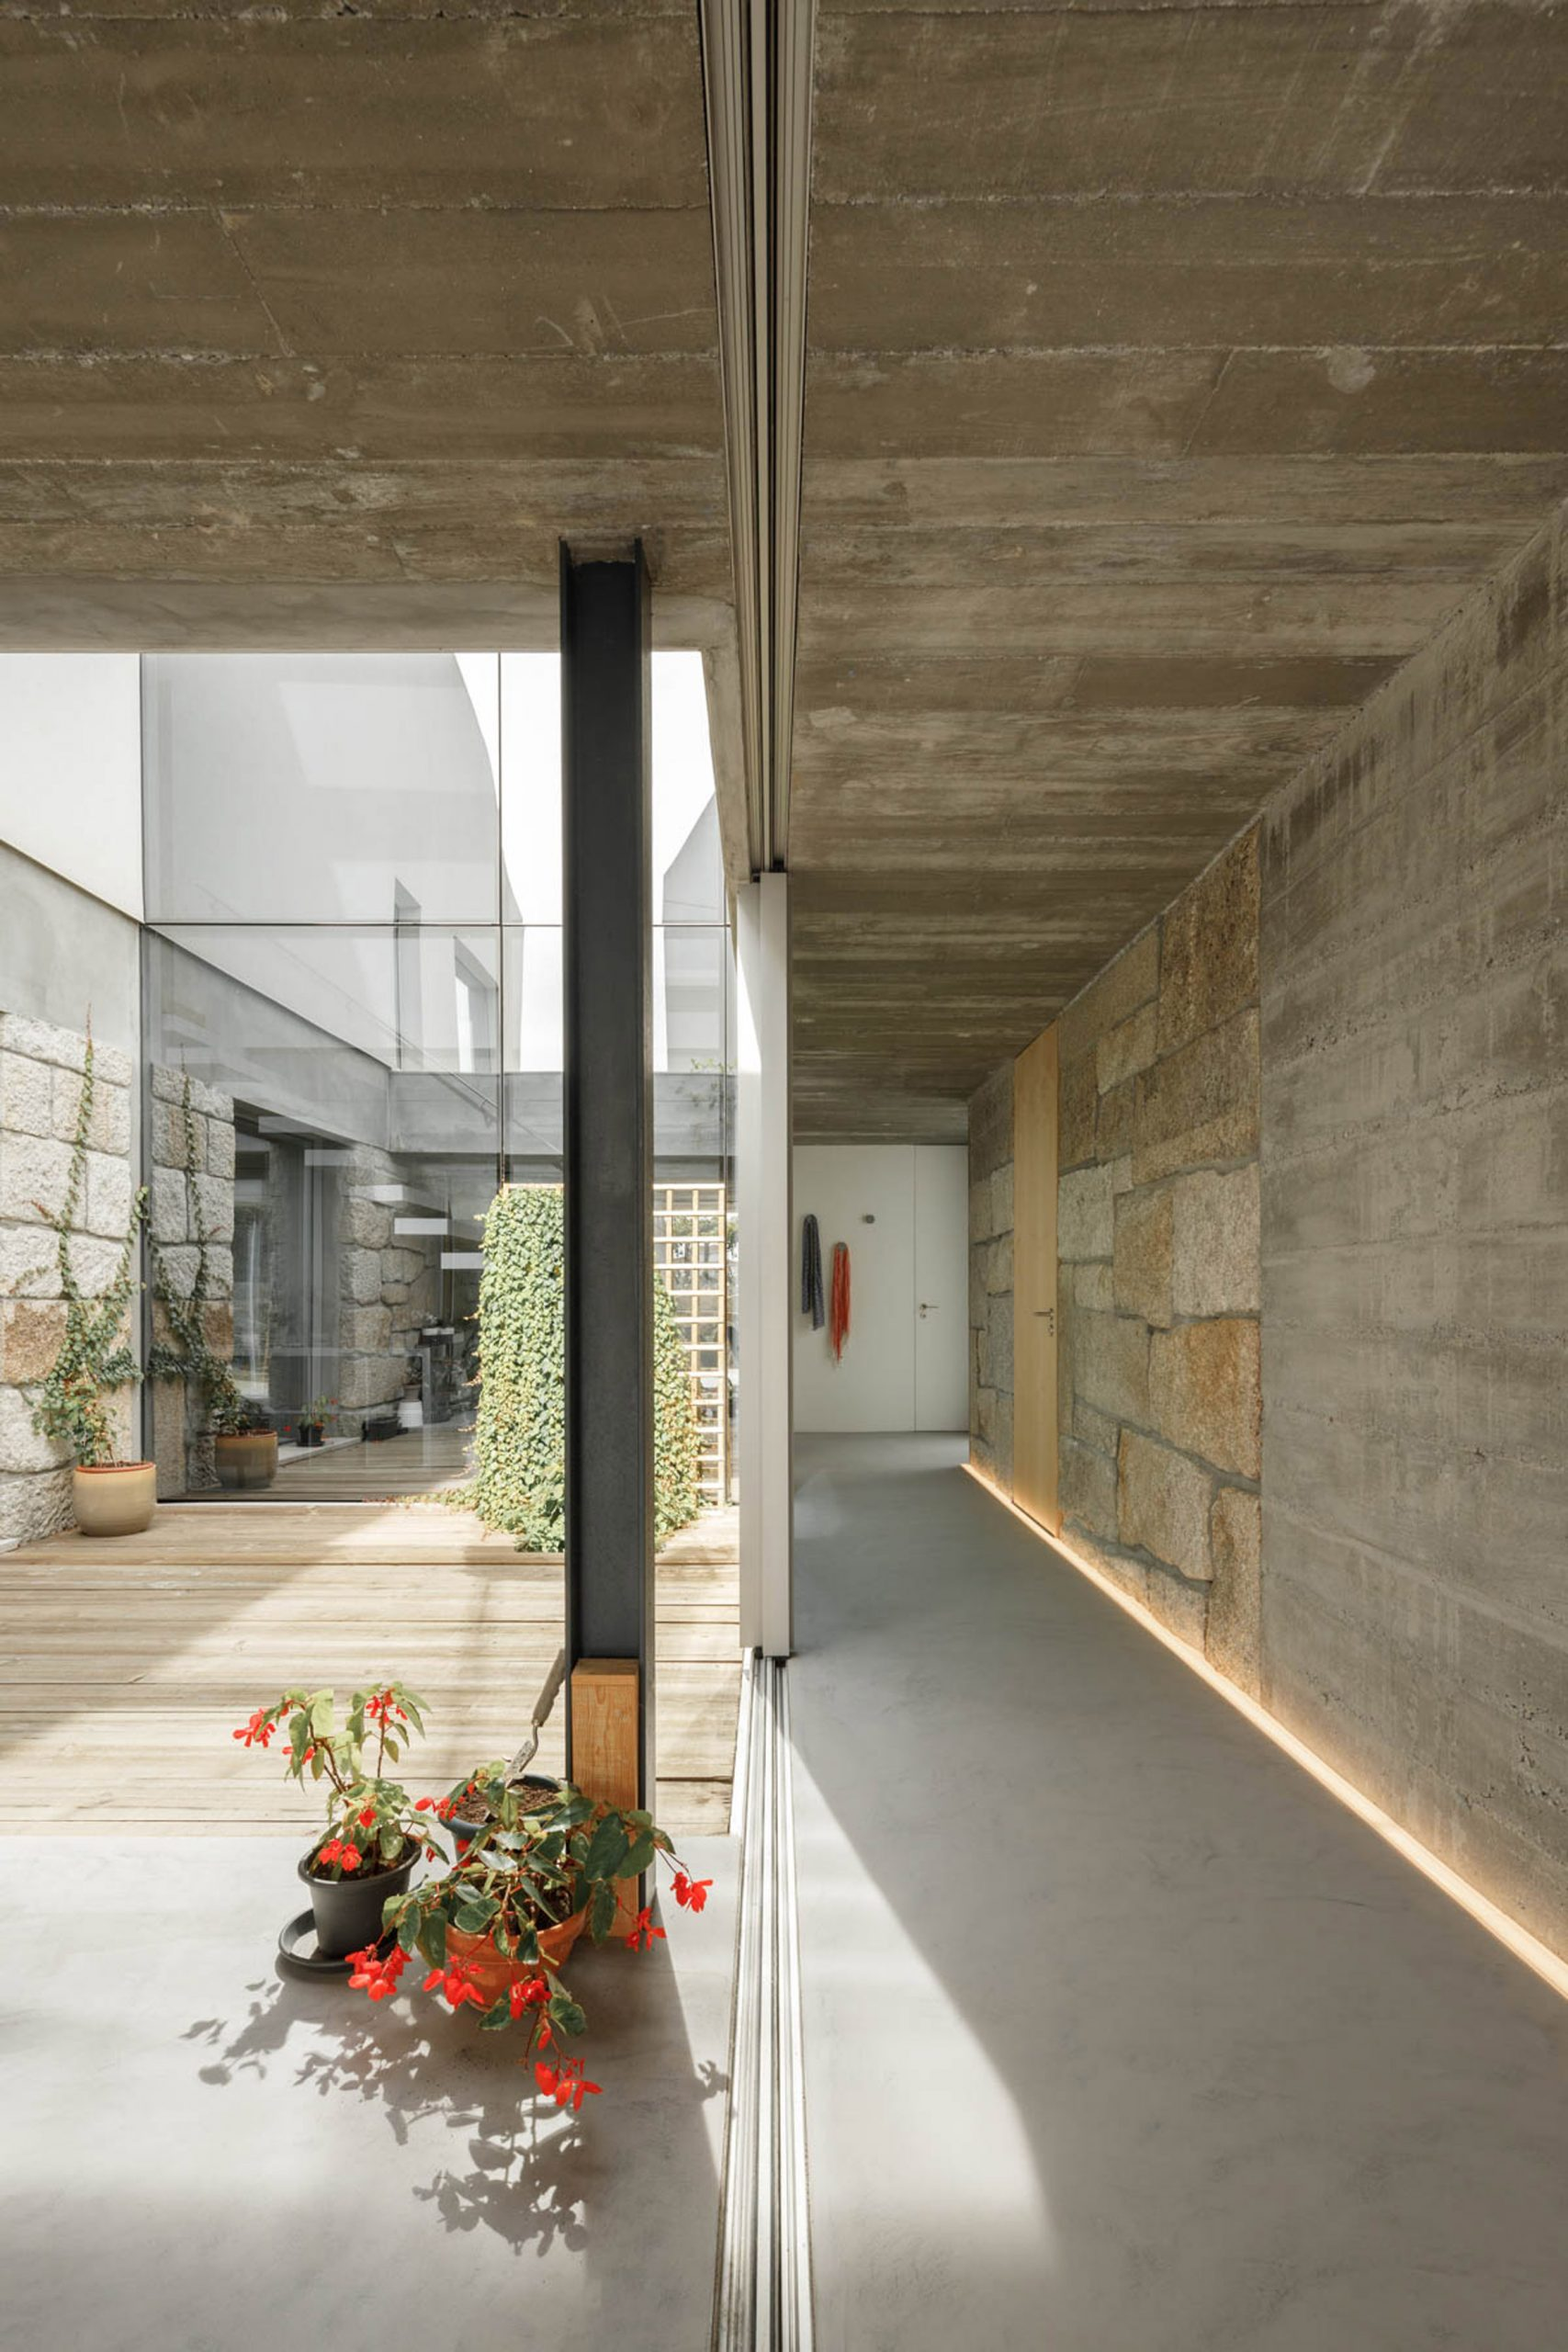 Sliding doors divide the indoors and outdoors